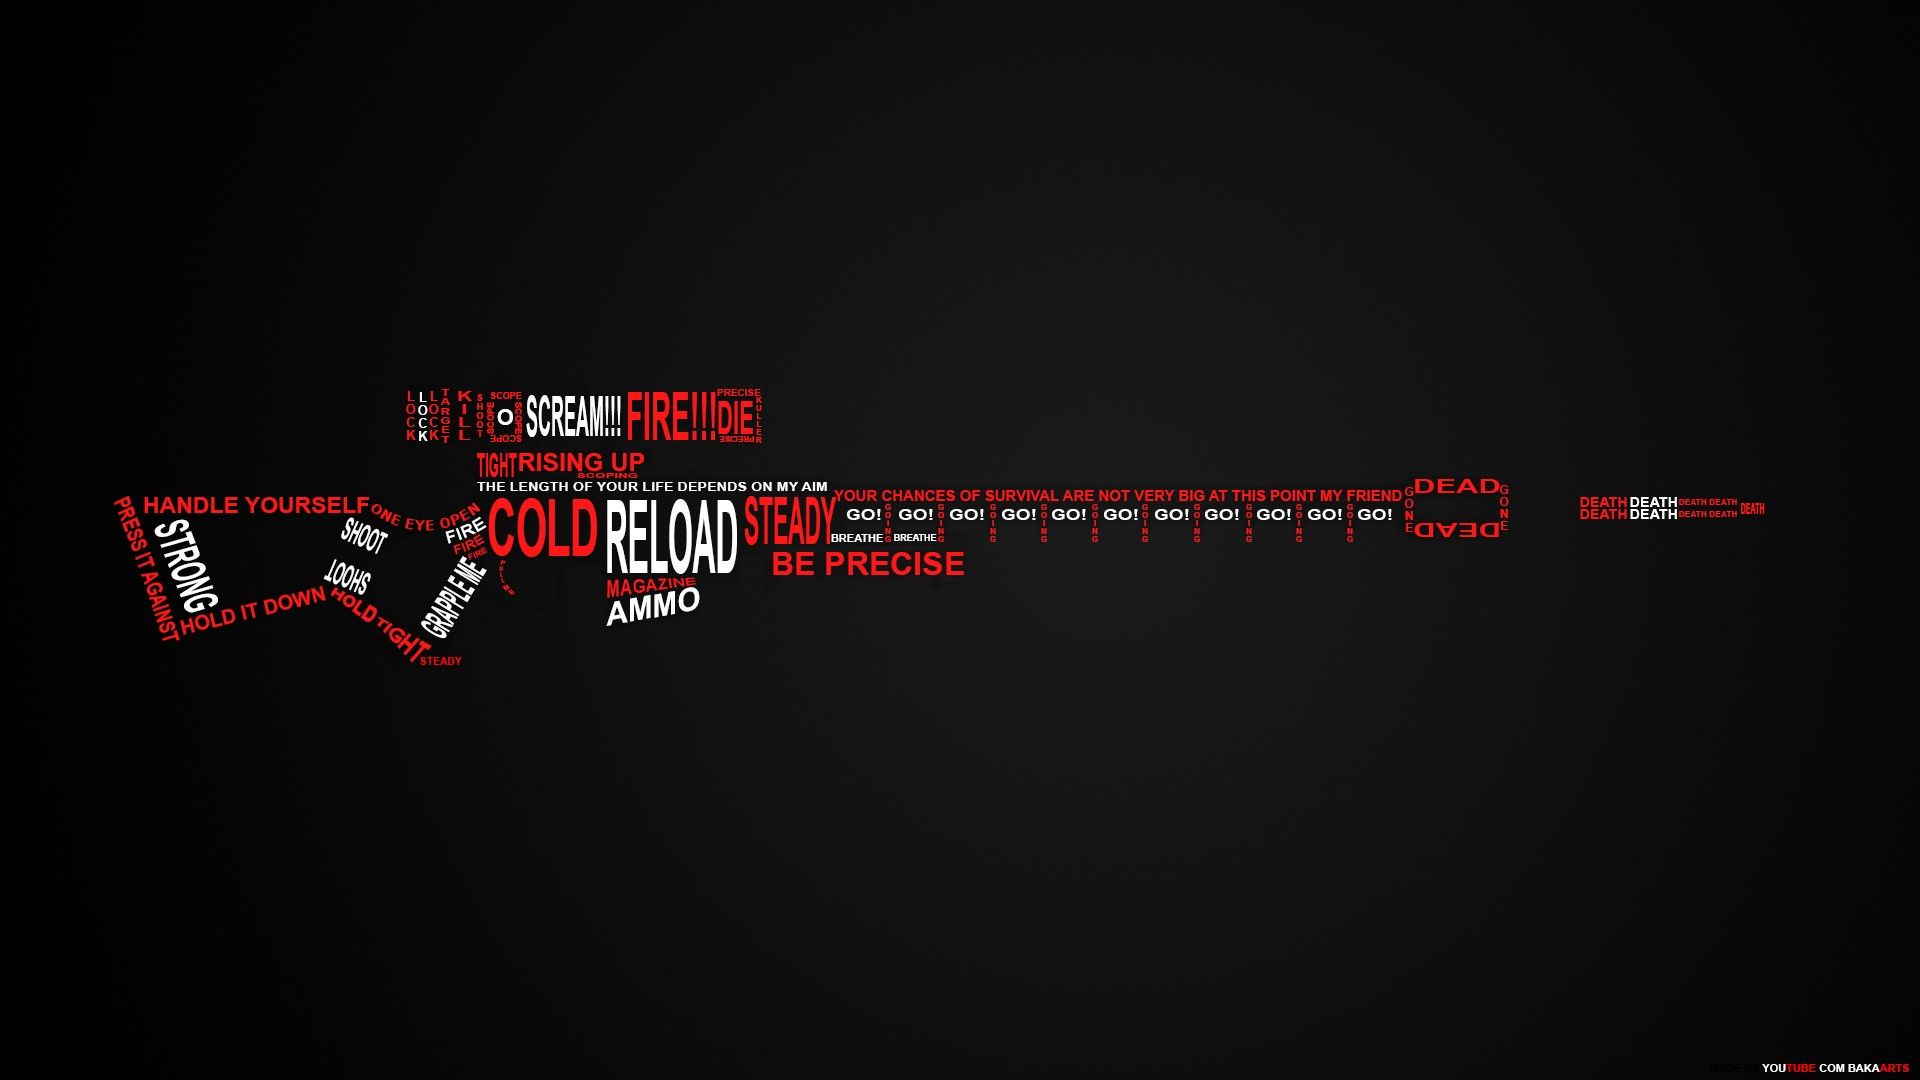 Rifle Sniper Rifle Typography text military weapons guns warrior dark 1920x1080